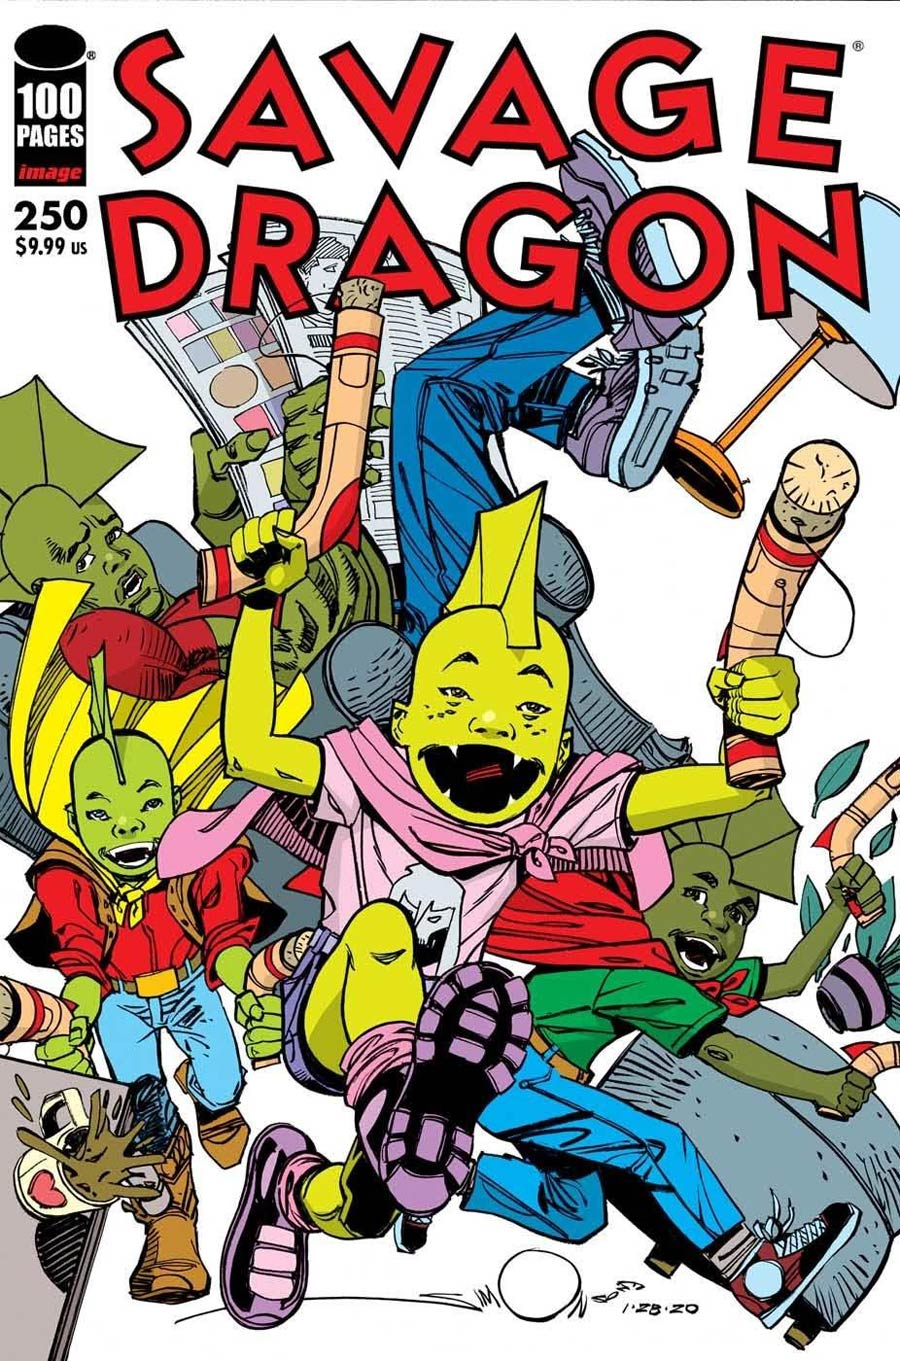 Savage Dragon Vol 2 #250 Cover D Variant Walter Simonson Cover